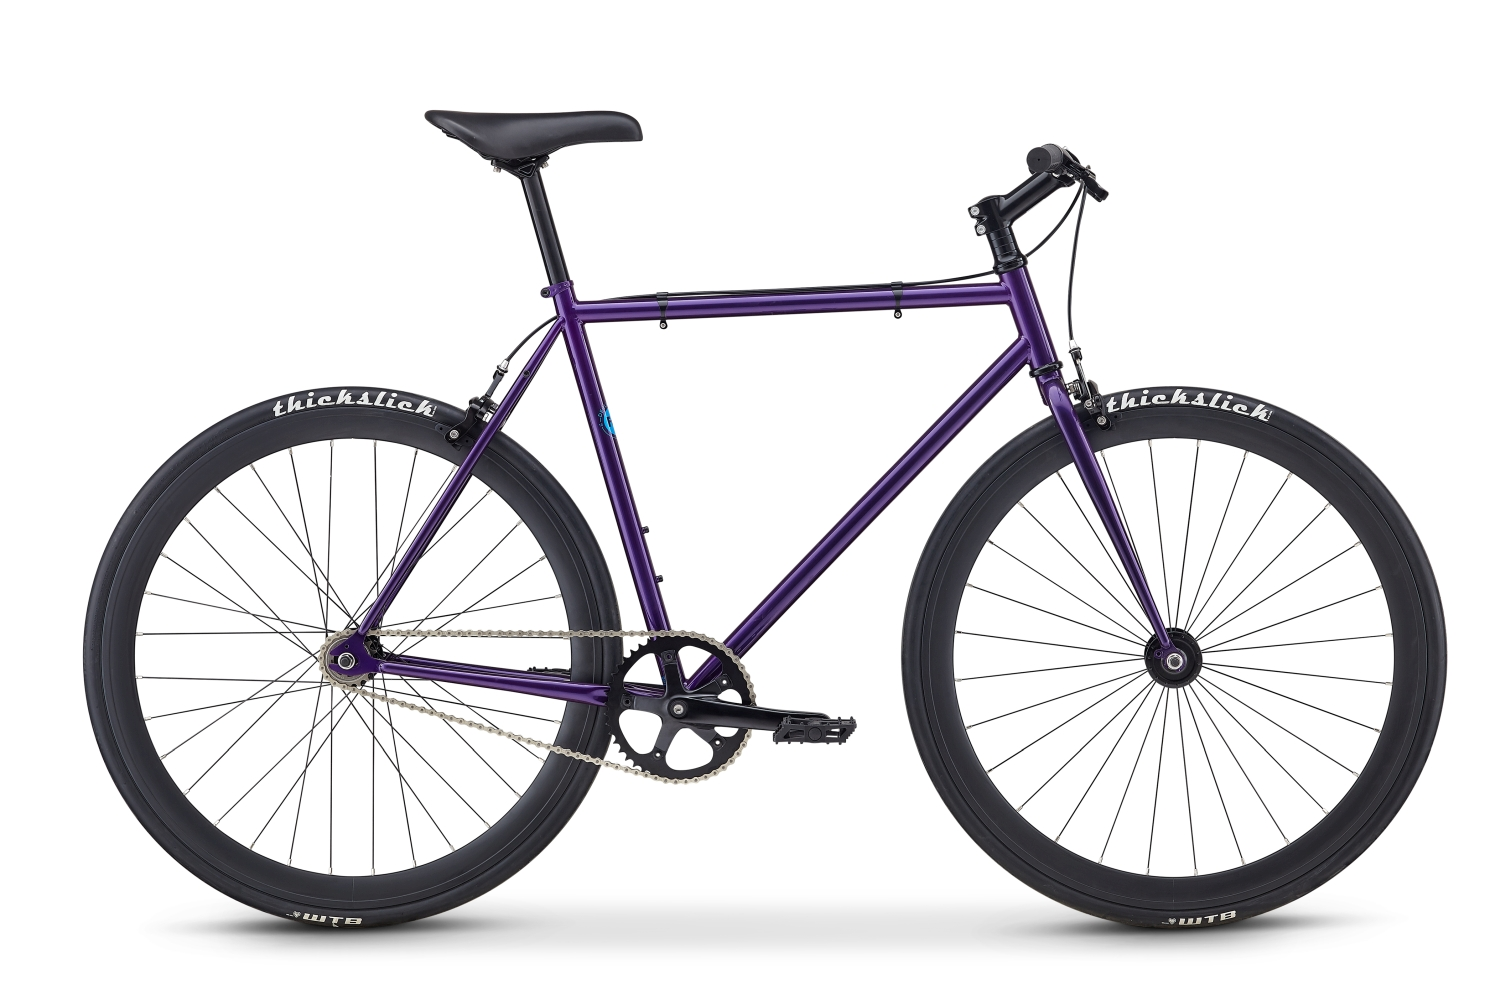 VELO FUJI DECLARATION PURPLE 2020